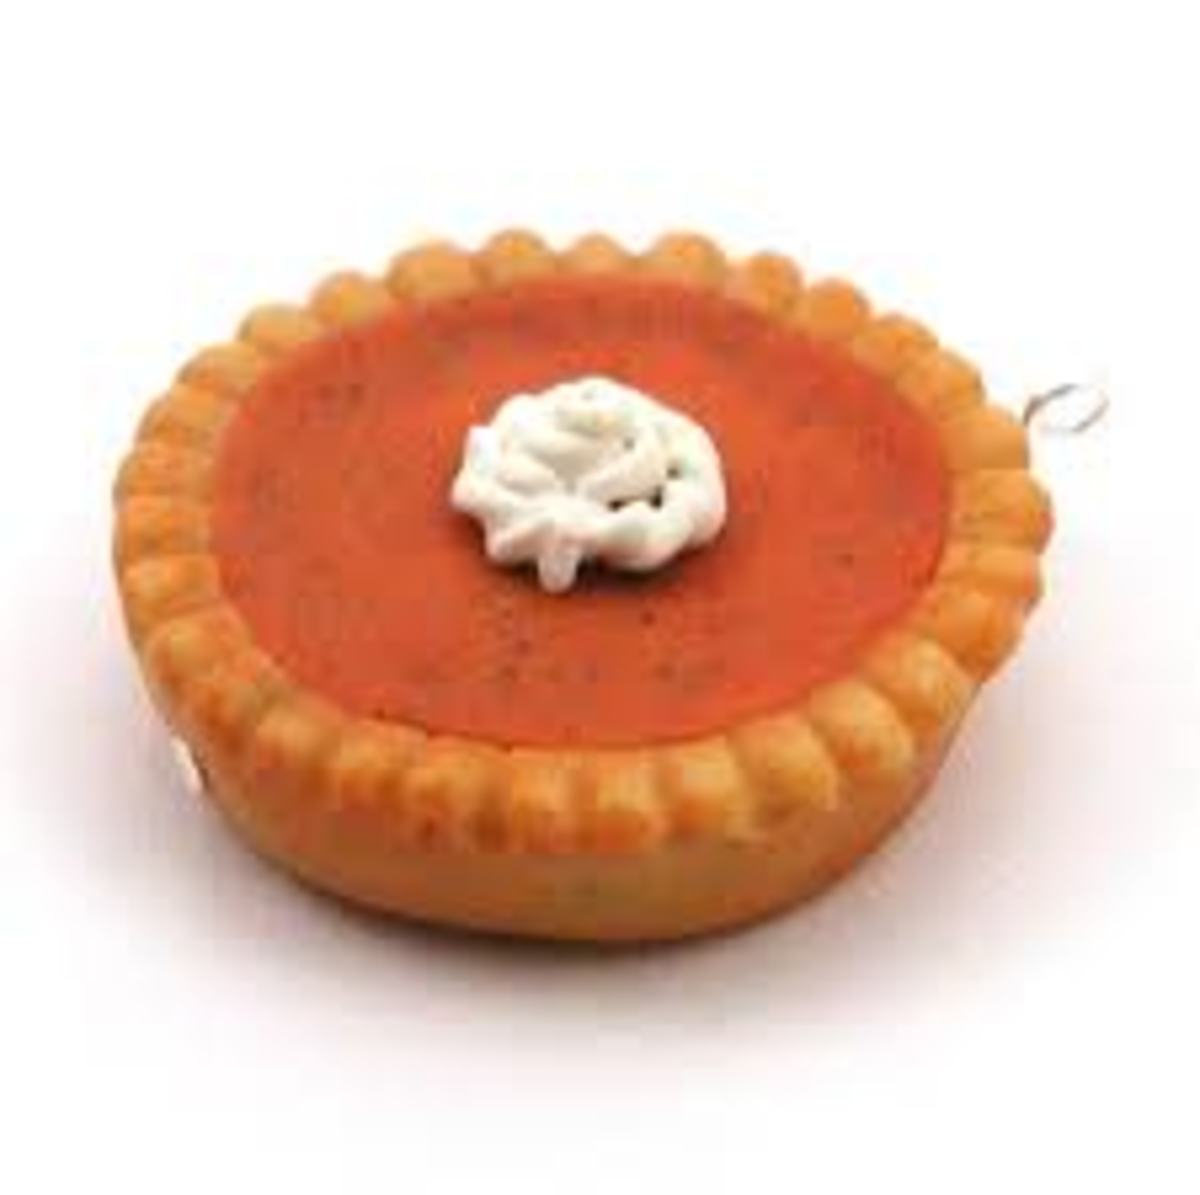 YUMMY PUMPKIN PIE MADE OUT OF POLYMER DOUGH